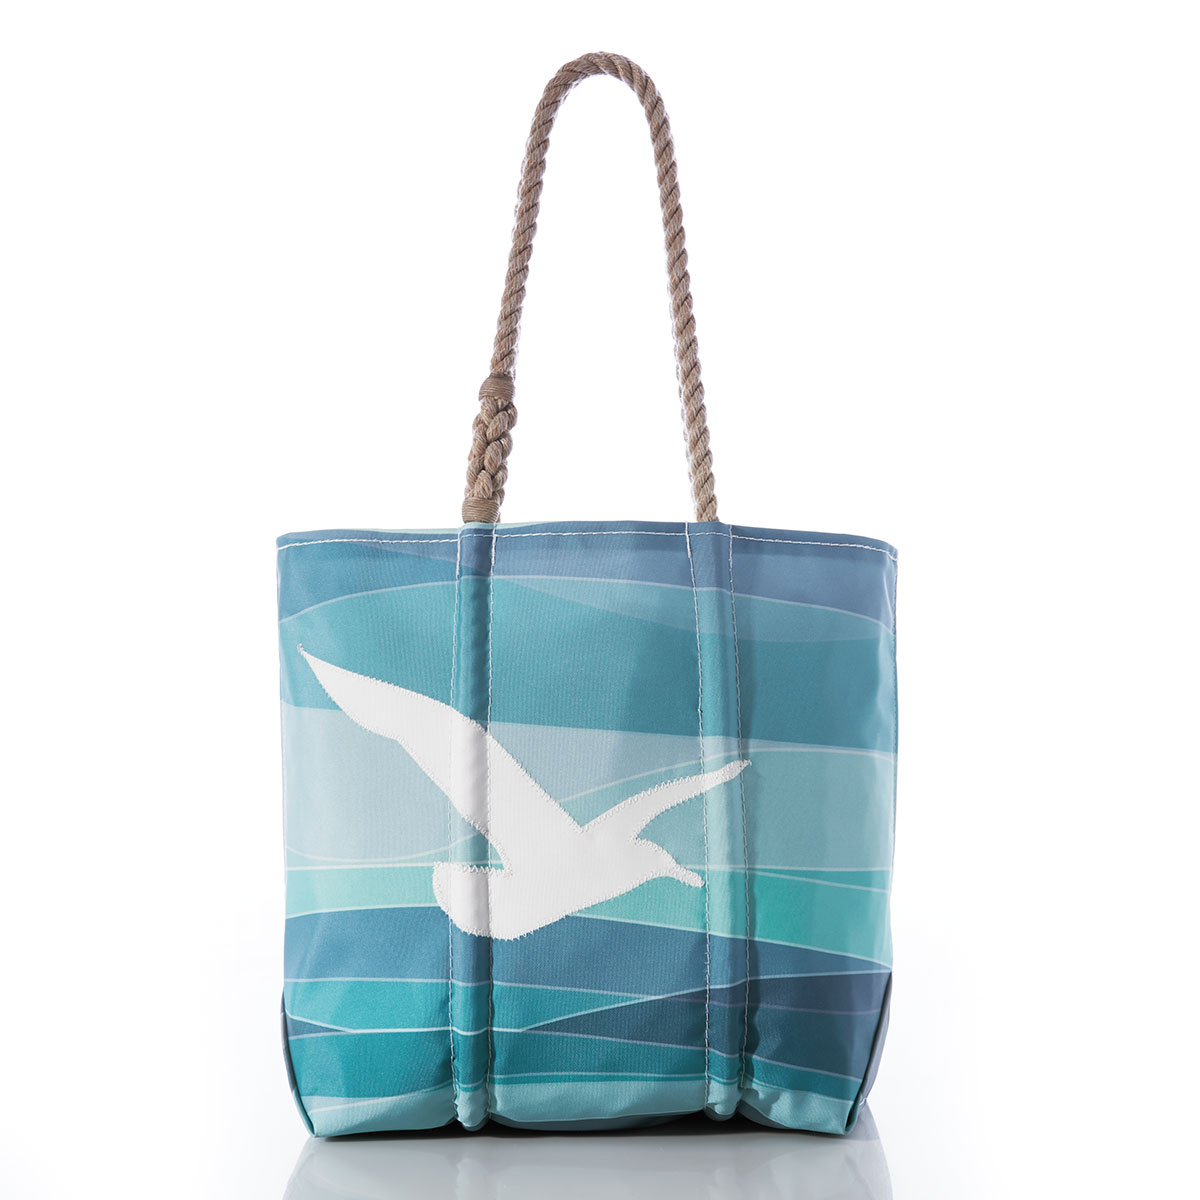 front of sail cloth tote bag, asymmetrical stripes in shades of blue and teal with a solid white outline of a seagull in the middle, and a hemp rope handle